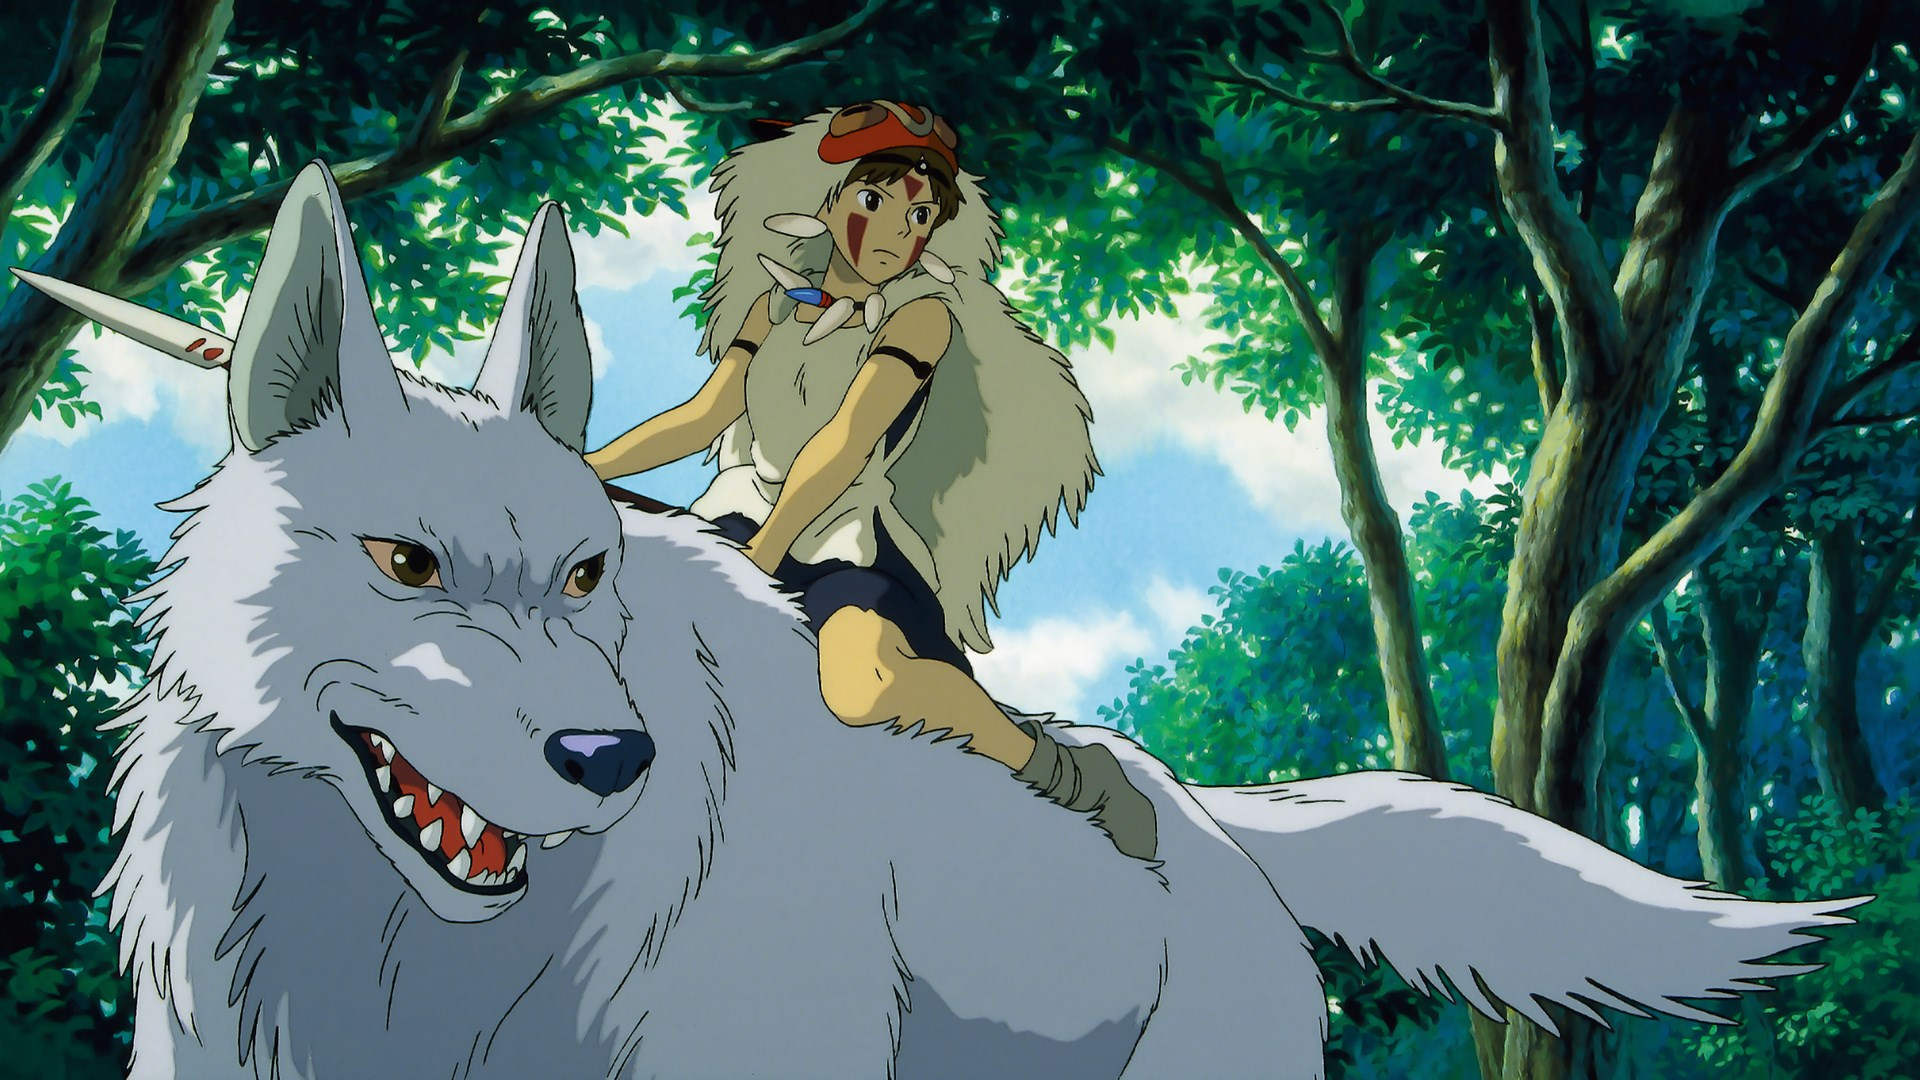 Hq Definition Wallpaper Desktop Princess Mononoke Jpg Princess Mononoke 3150395 Hd Wallpaper Backgrounds Download